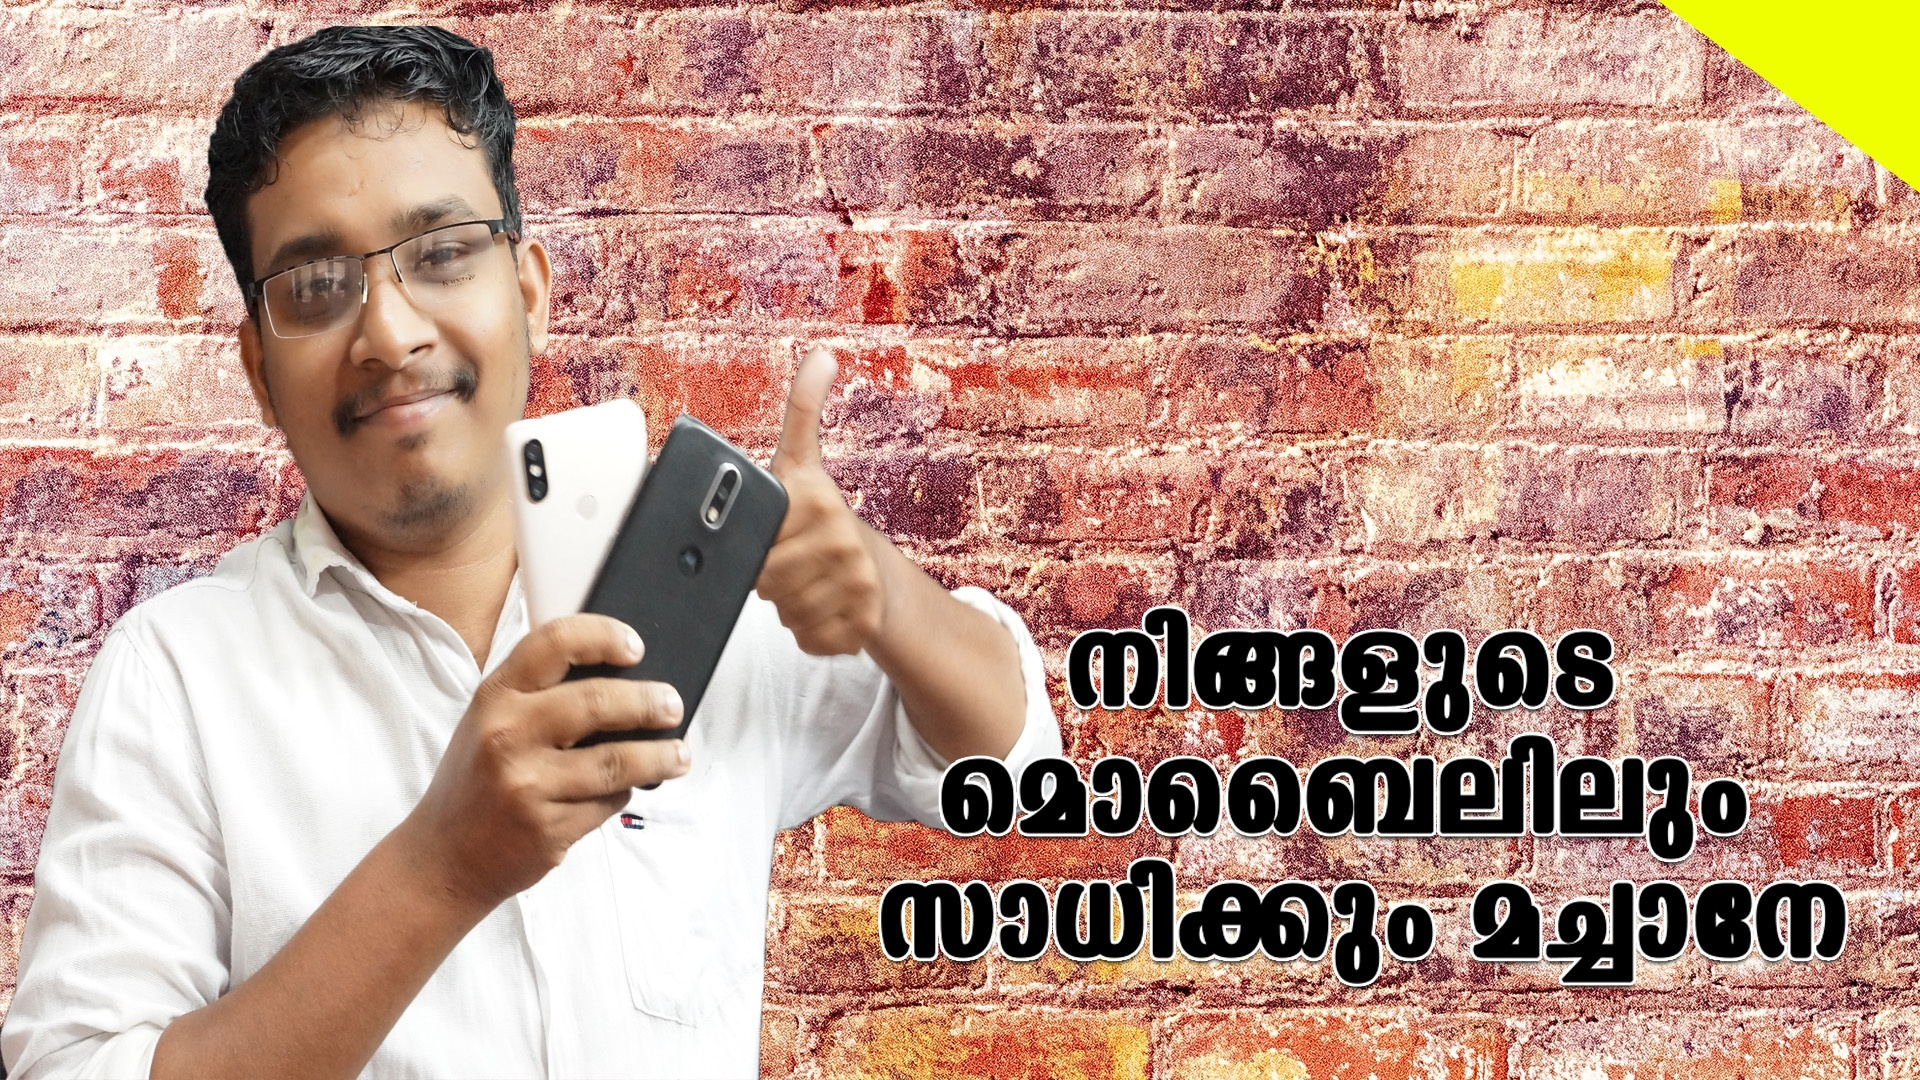 HOW TO ANSWER INCOMING CALLS WITHOUT TOUCHING MOBILE